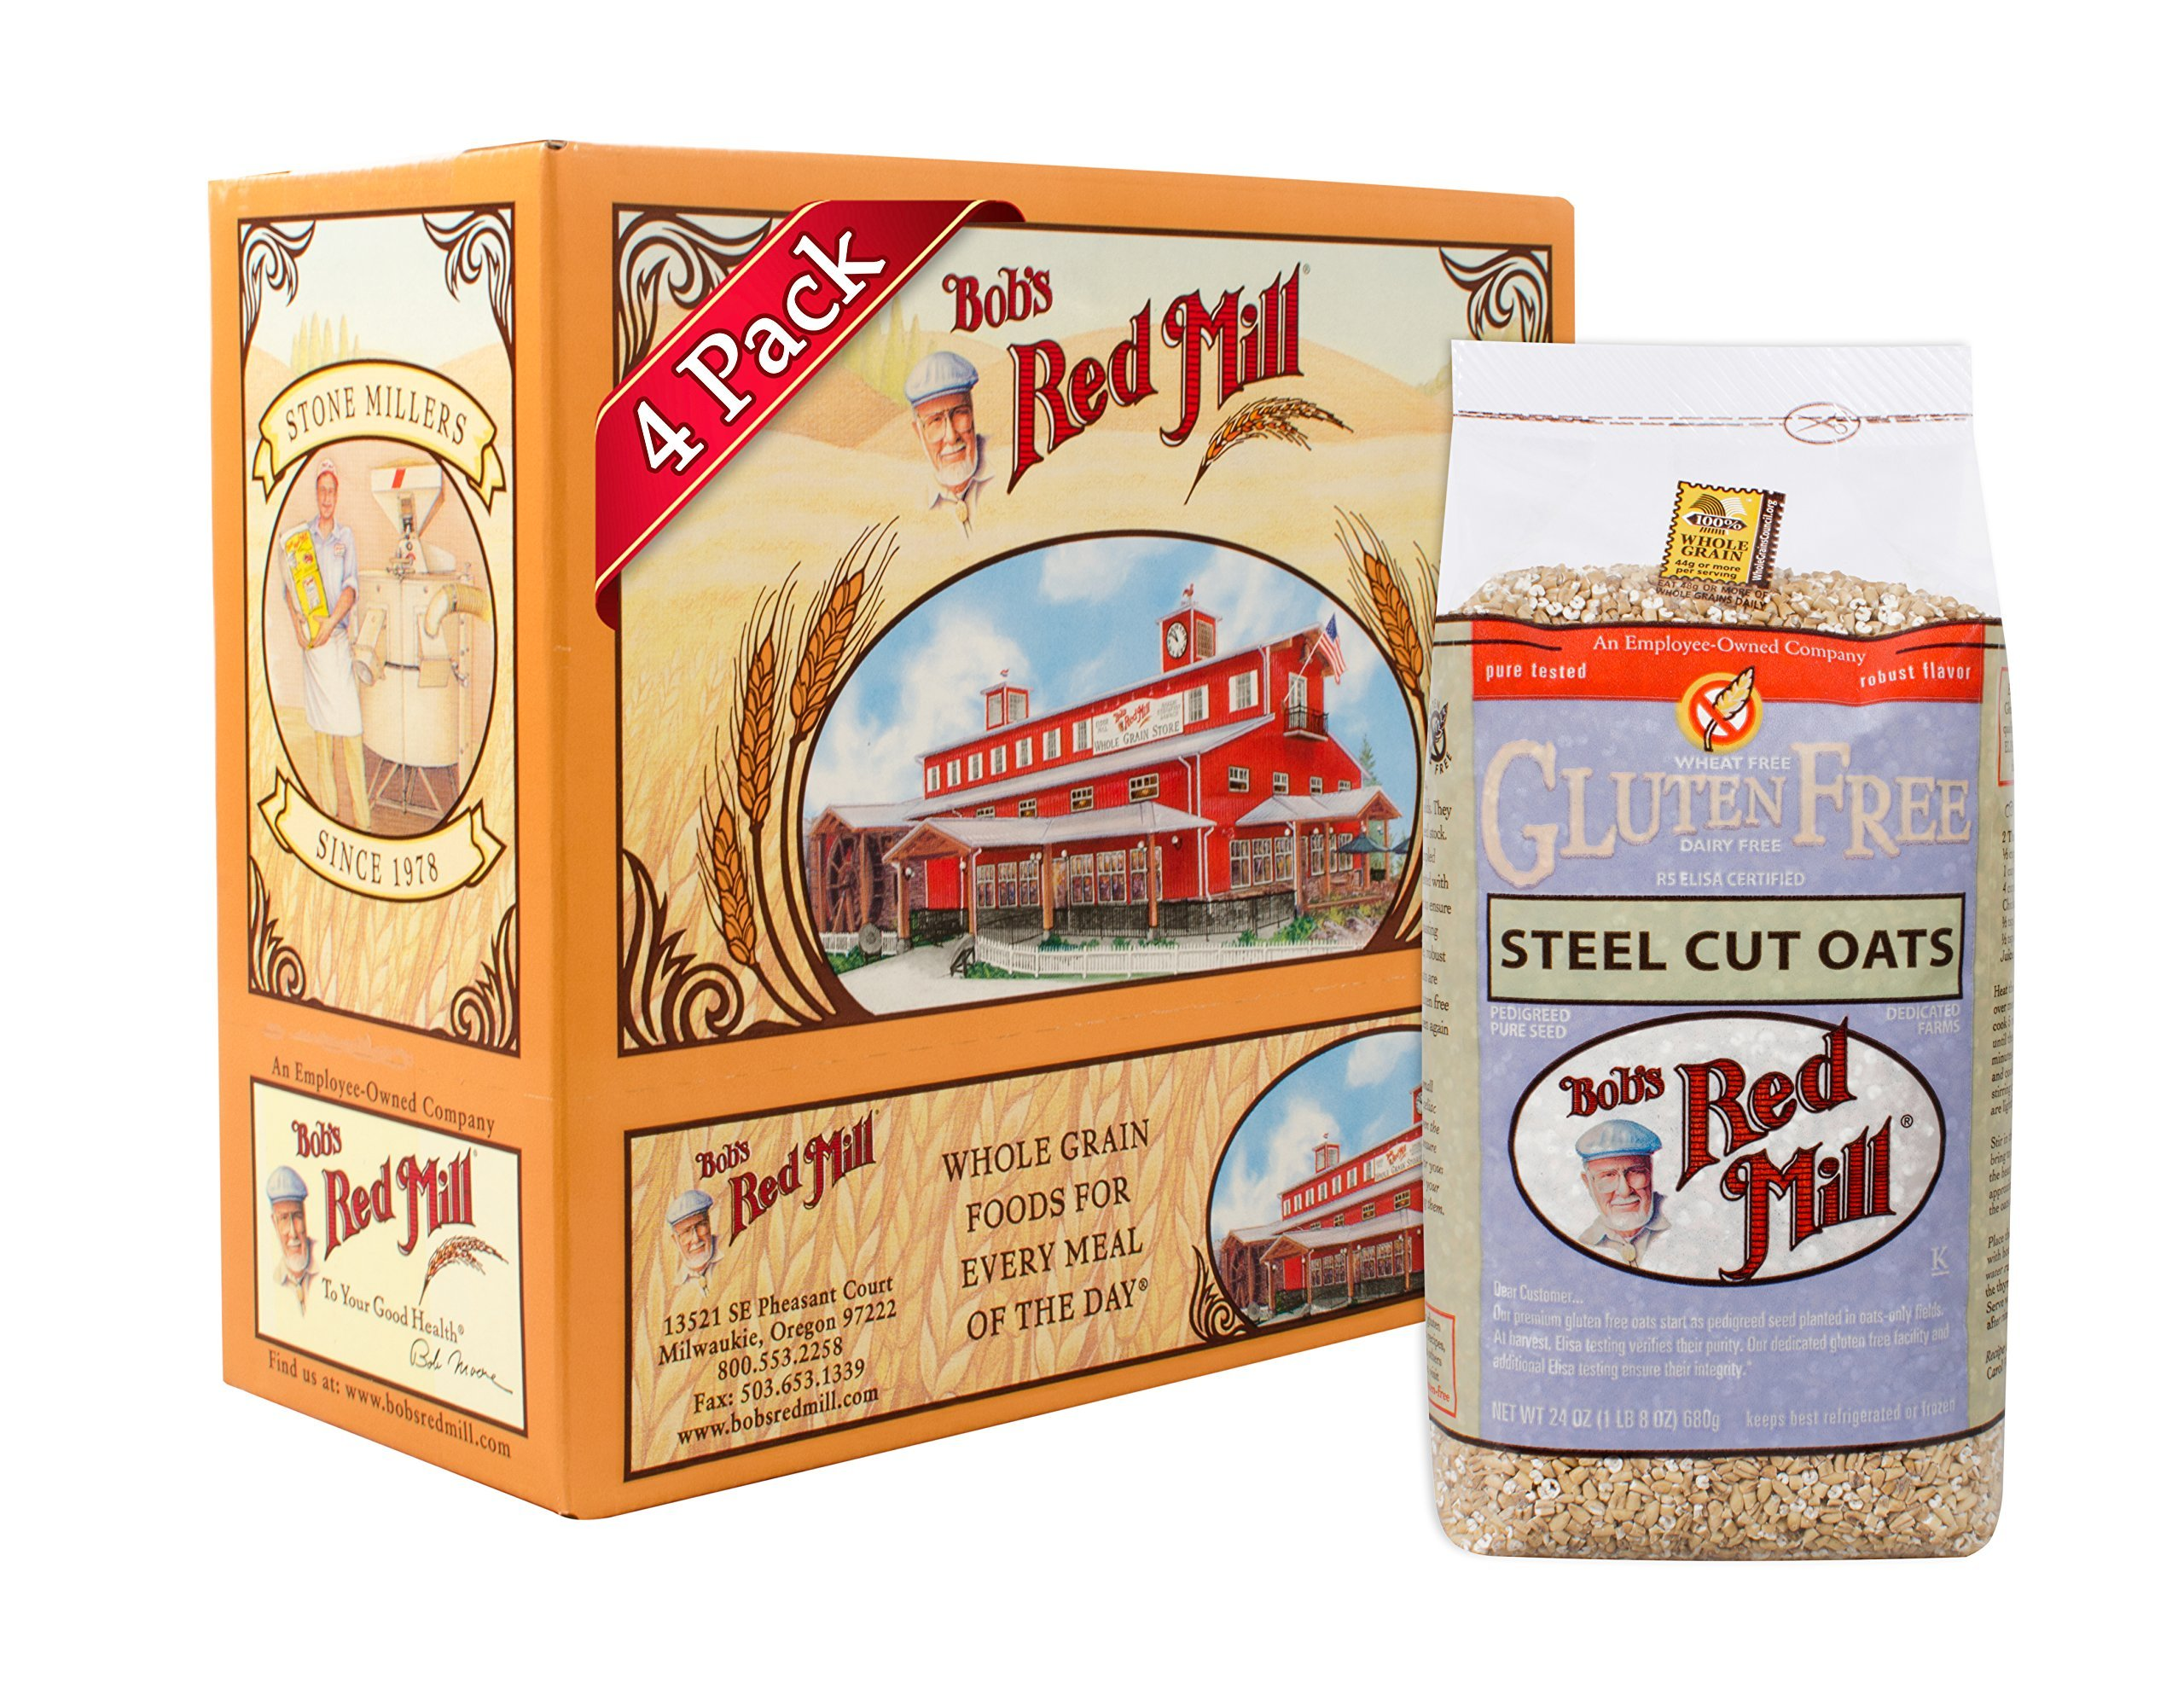 Bob's Red Mill Gluten Free Steel Cut Oats, 24 Oz (4 Pack) by Bob's Red Mill